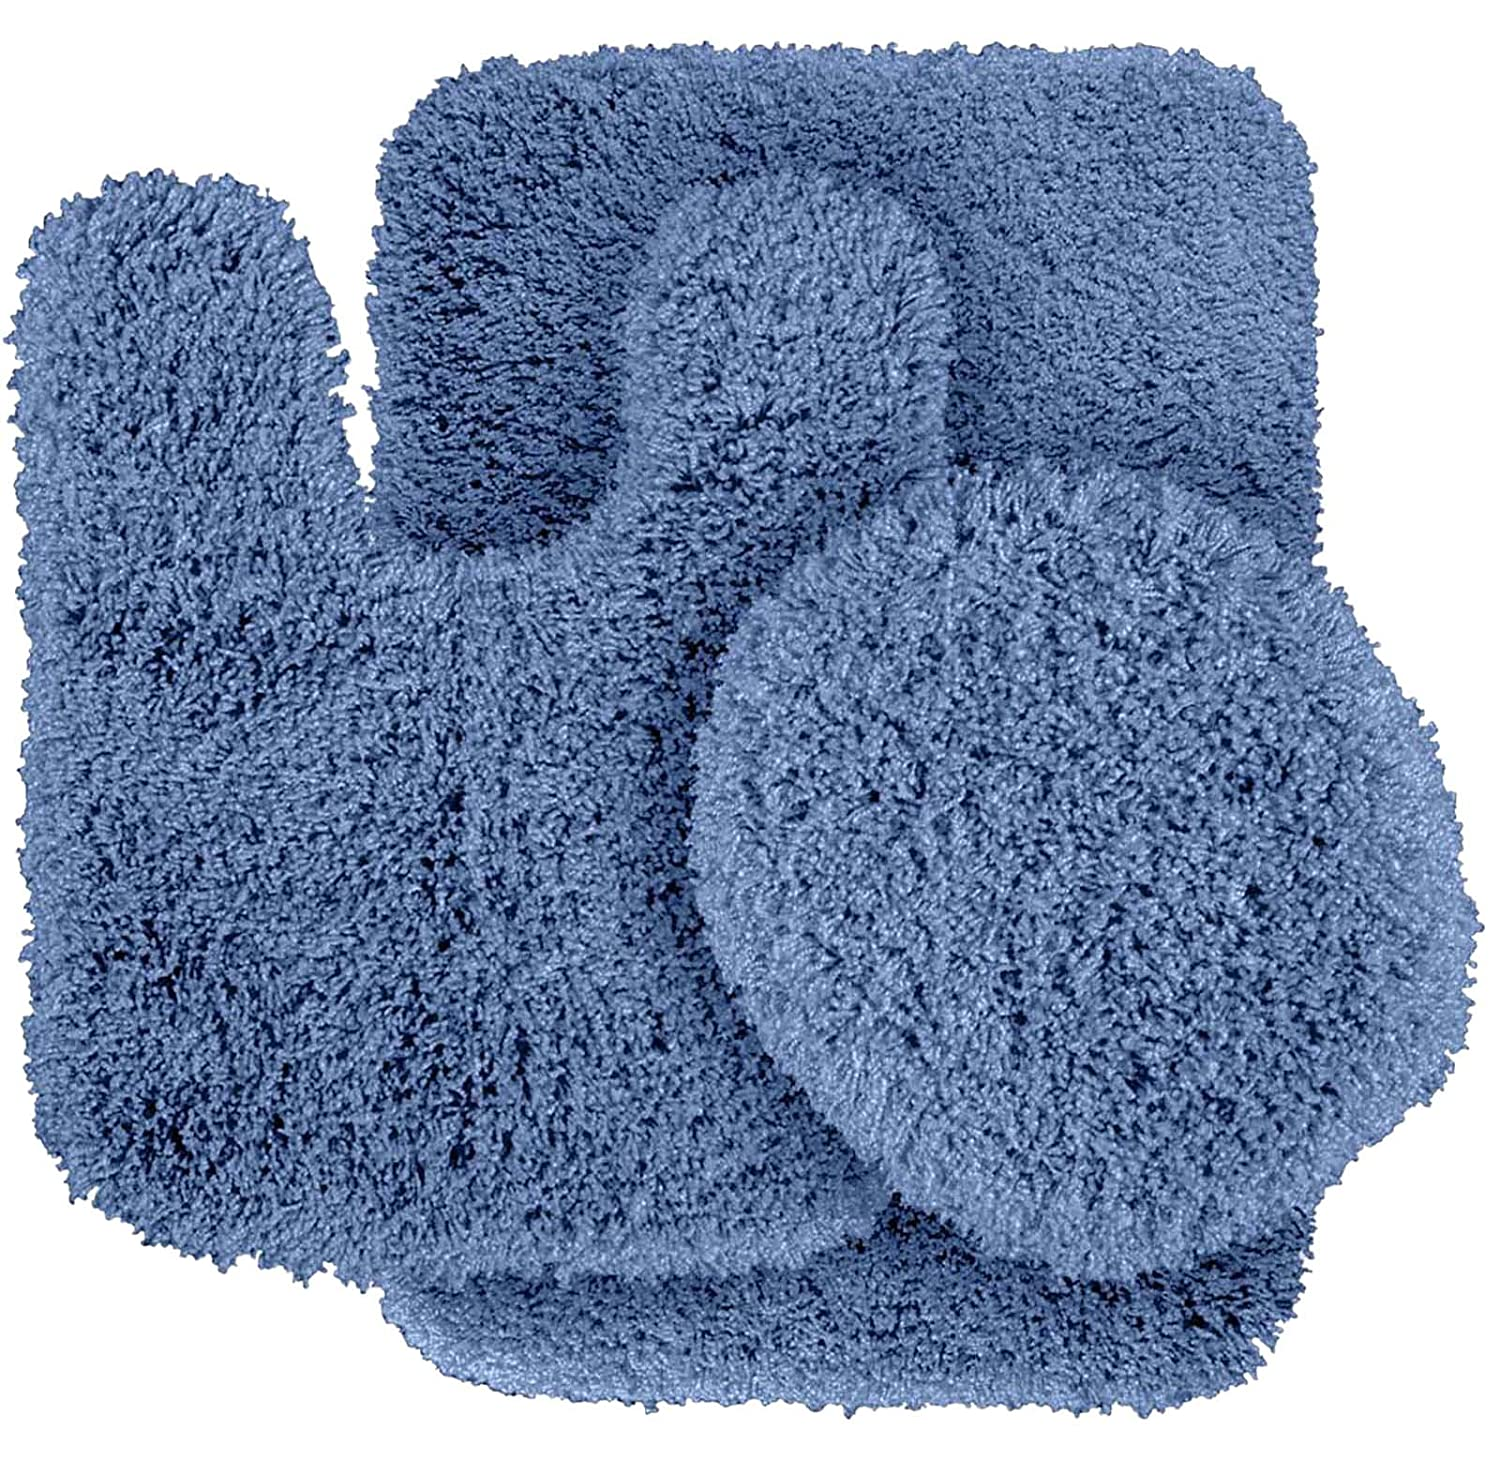 Basin bluee 3-Piece Set Garland Rug BA100W3P02I6 Serendipity Bath Rug Set, 3-Piece Set, Sea Foam